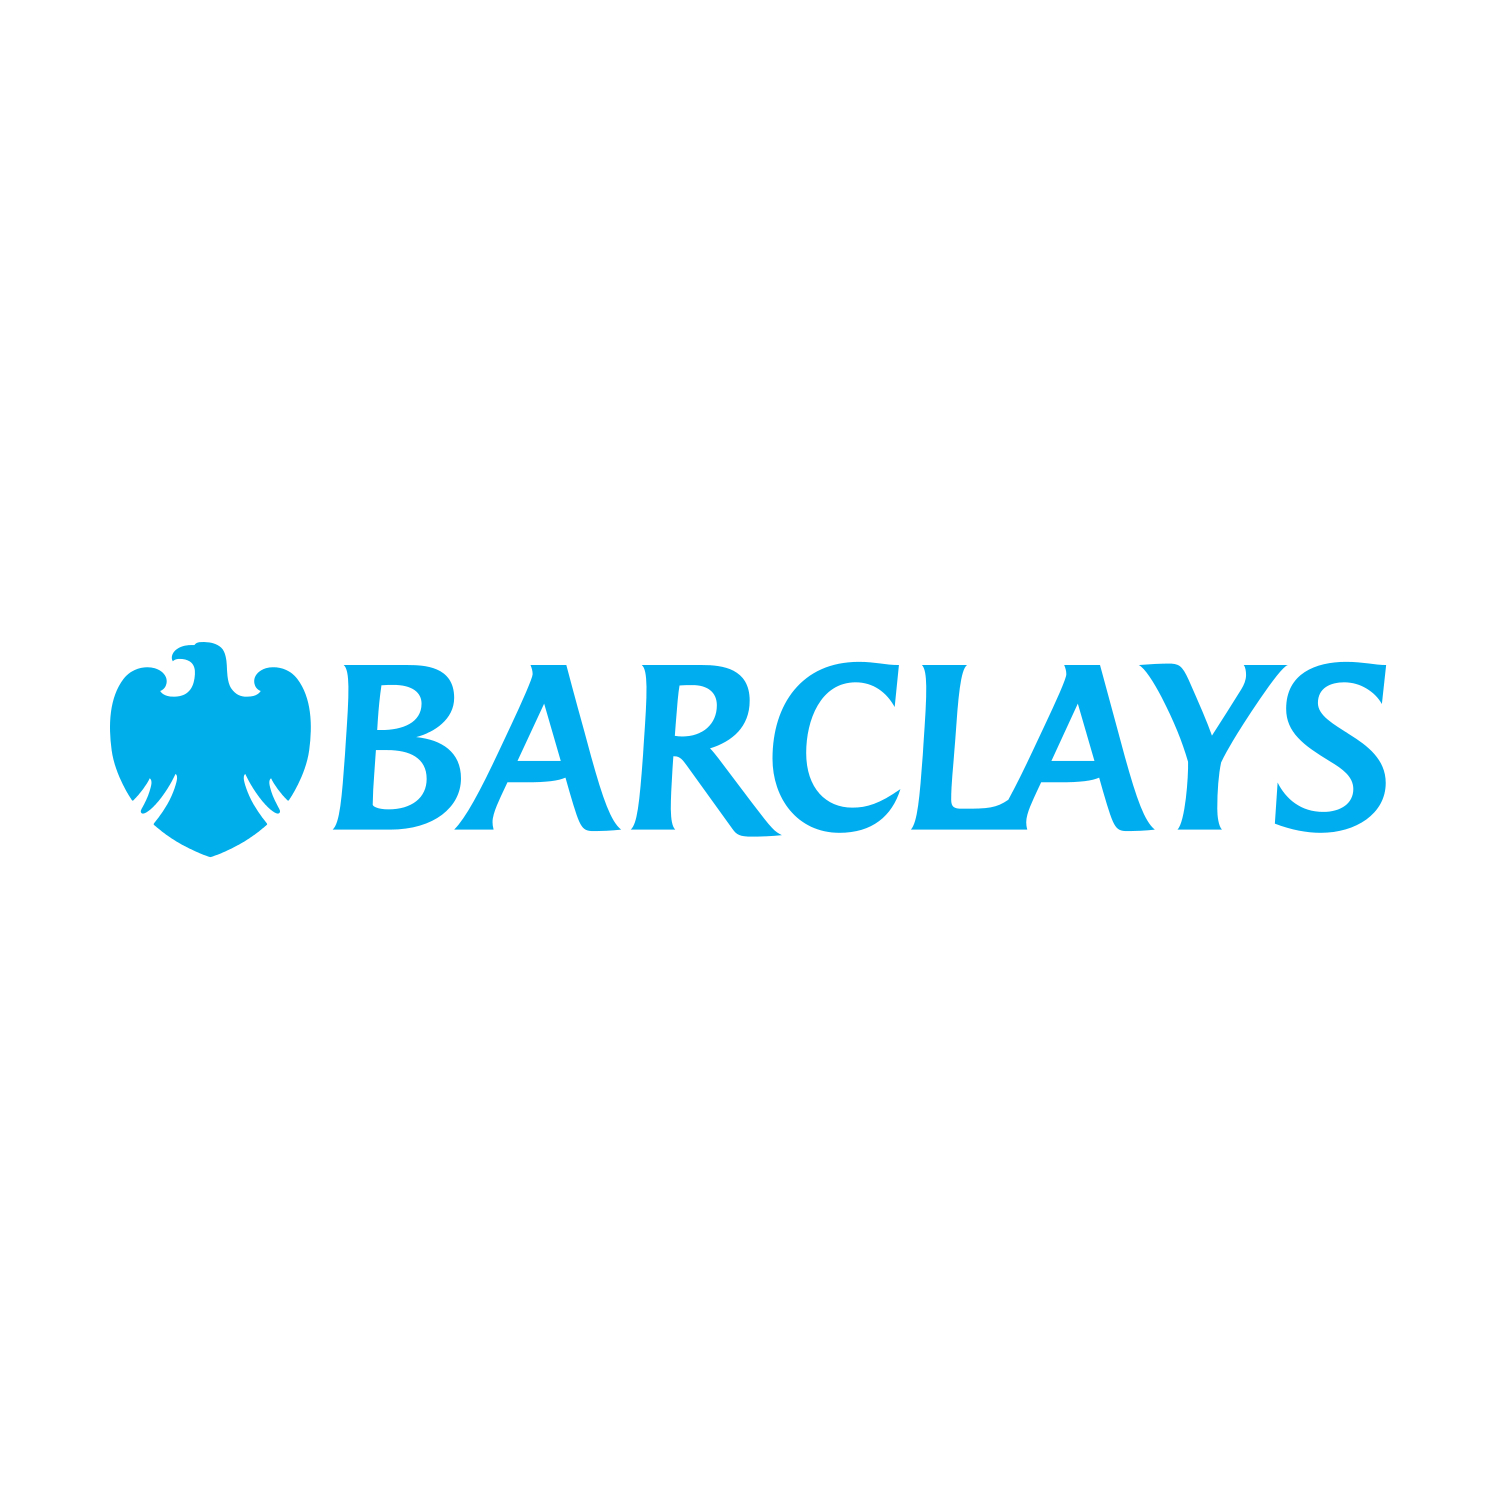 barclays_logo_square